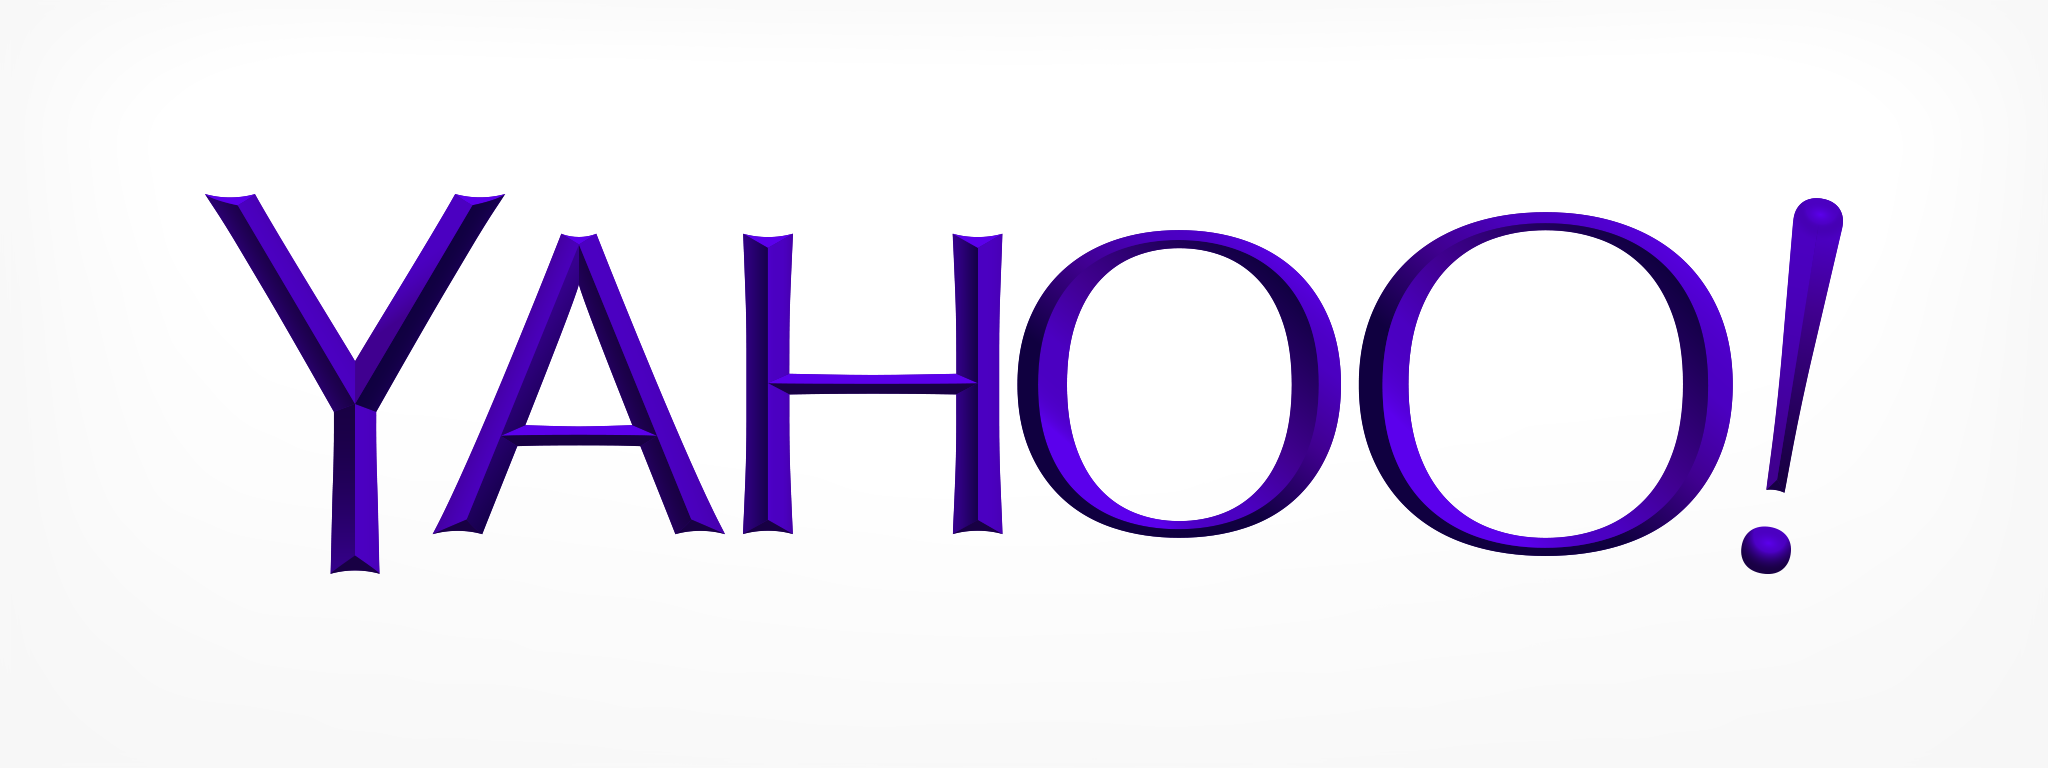 Yahoo: 7 Ways to Invest With a Theme in Mind Thumbnail